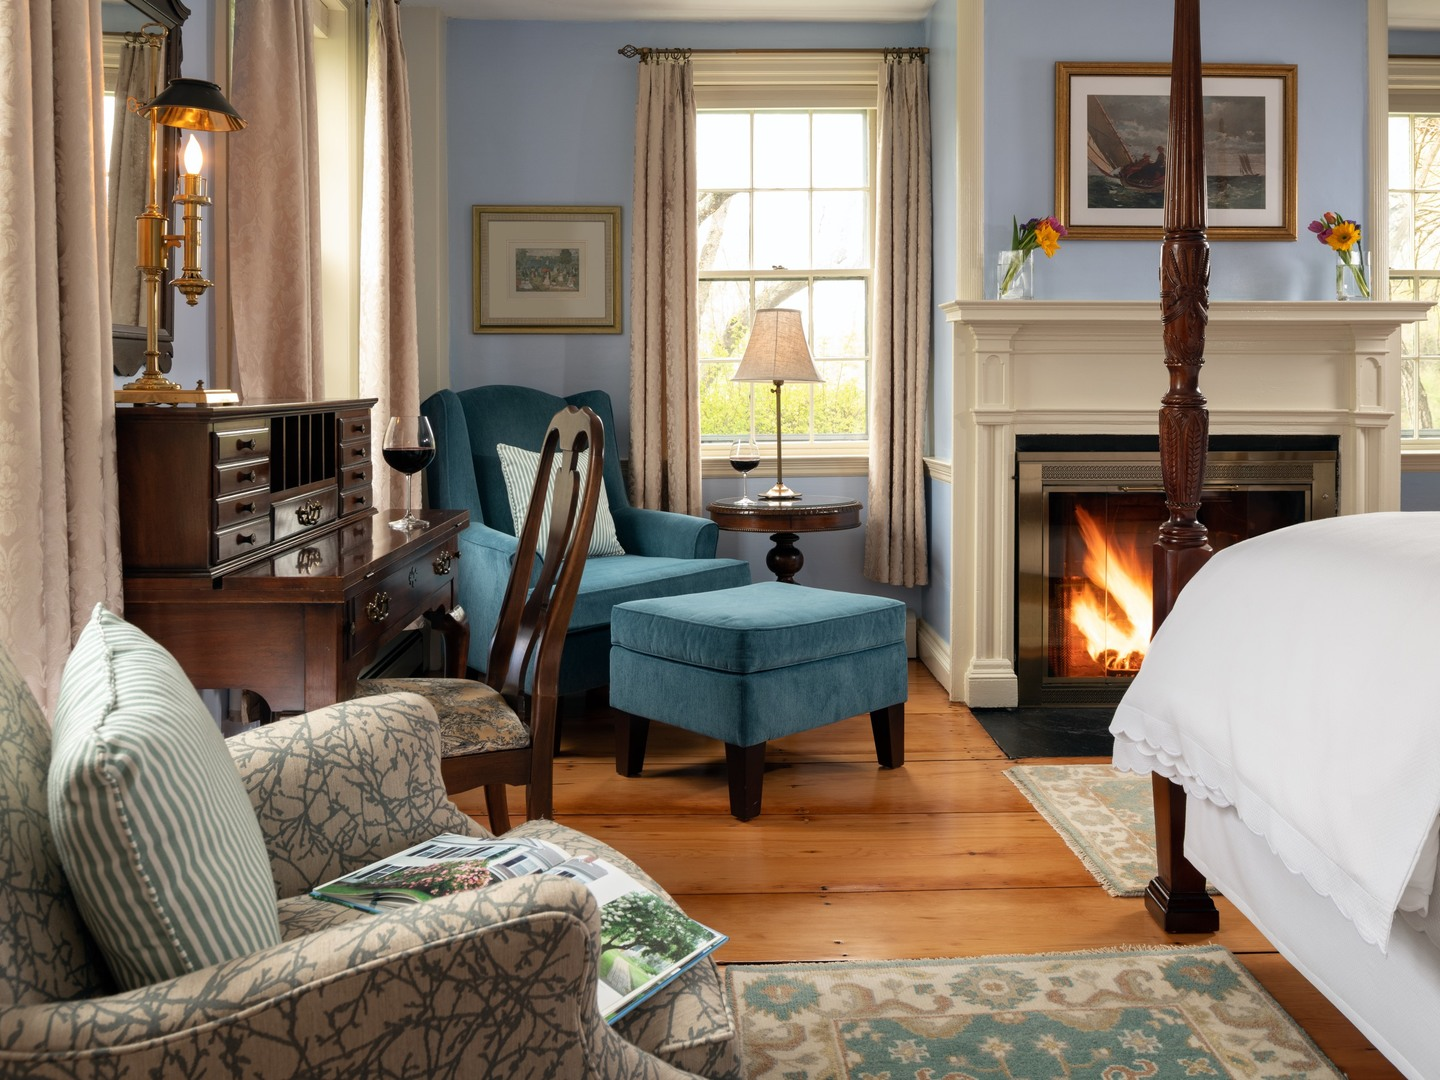 A living room filled with furniture and a fire place at Candleberry Inn on Cape Cod.